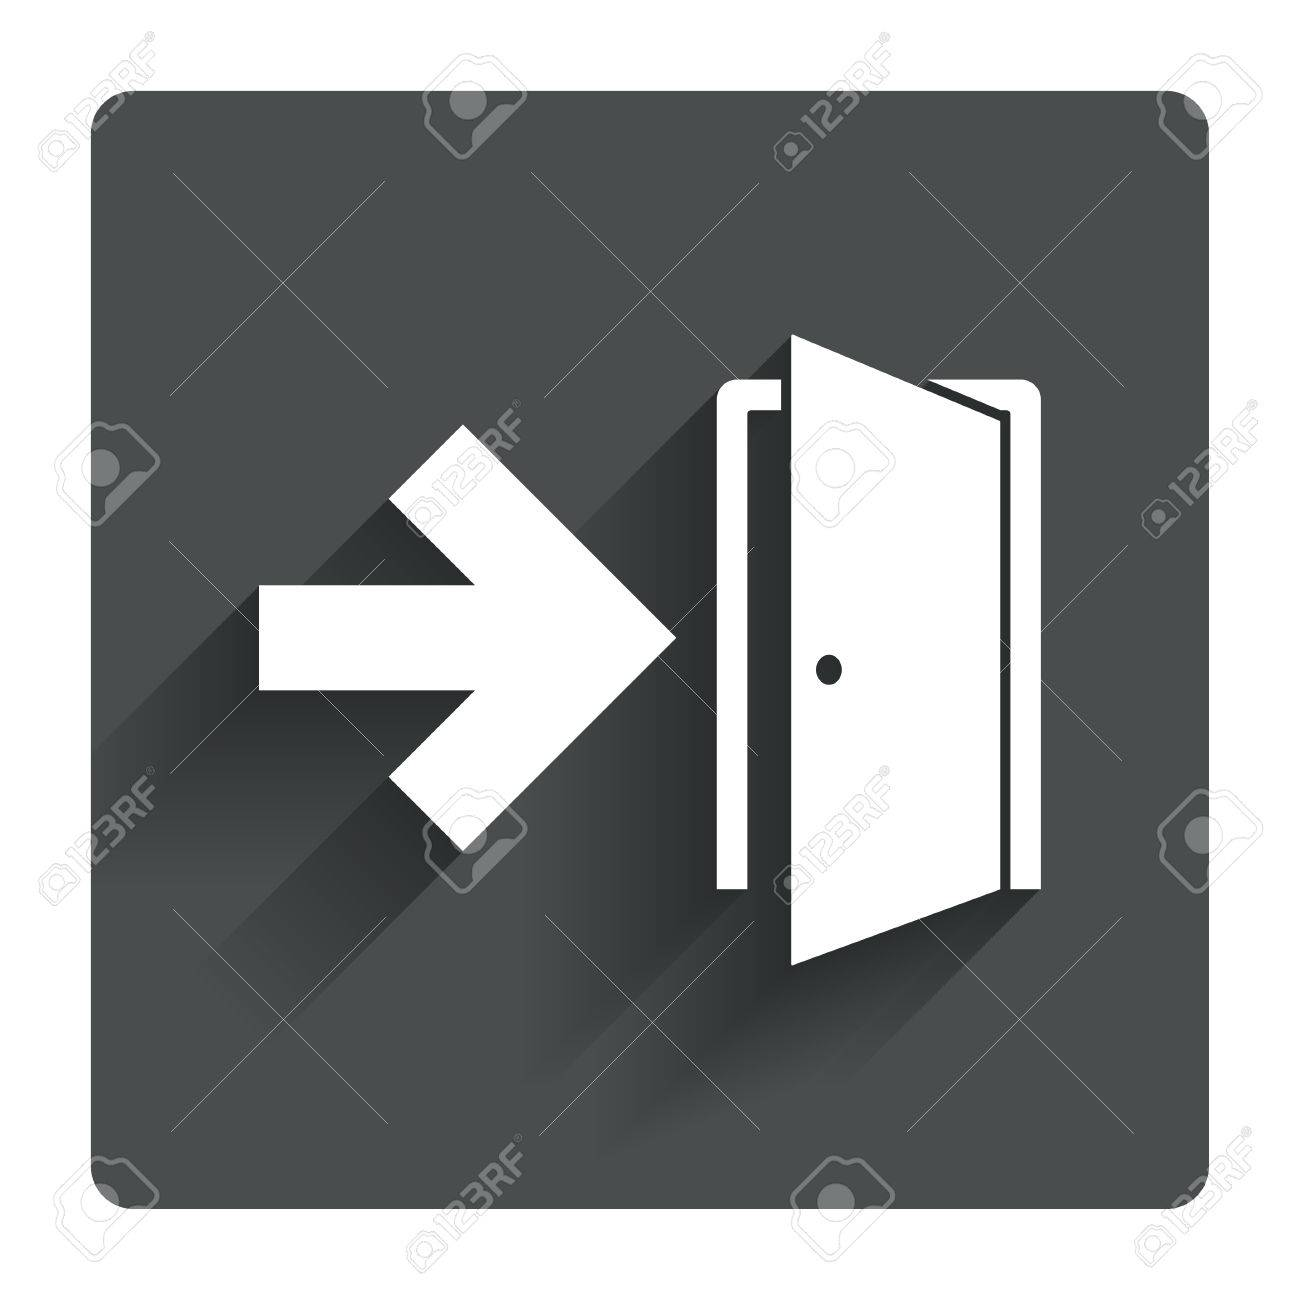 Emergency exit sign icon. Door with right arrow symbol. Fire exit. Gray flat  sc 1 st  123RF.com & Emergency Exit Sign Icon. Door With Right Arrow Symbol. Fire ...